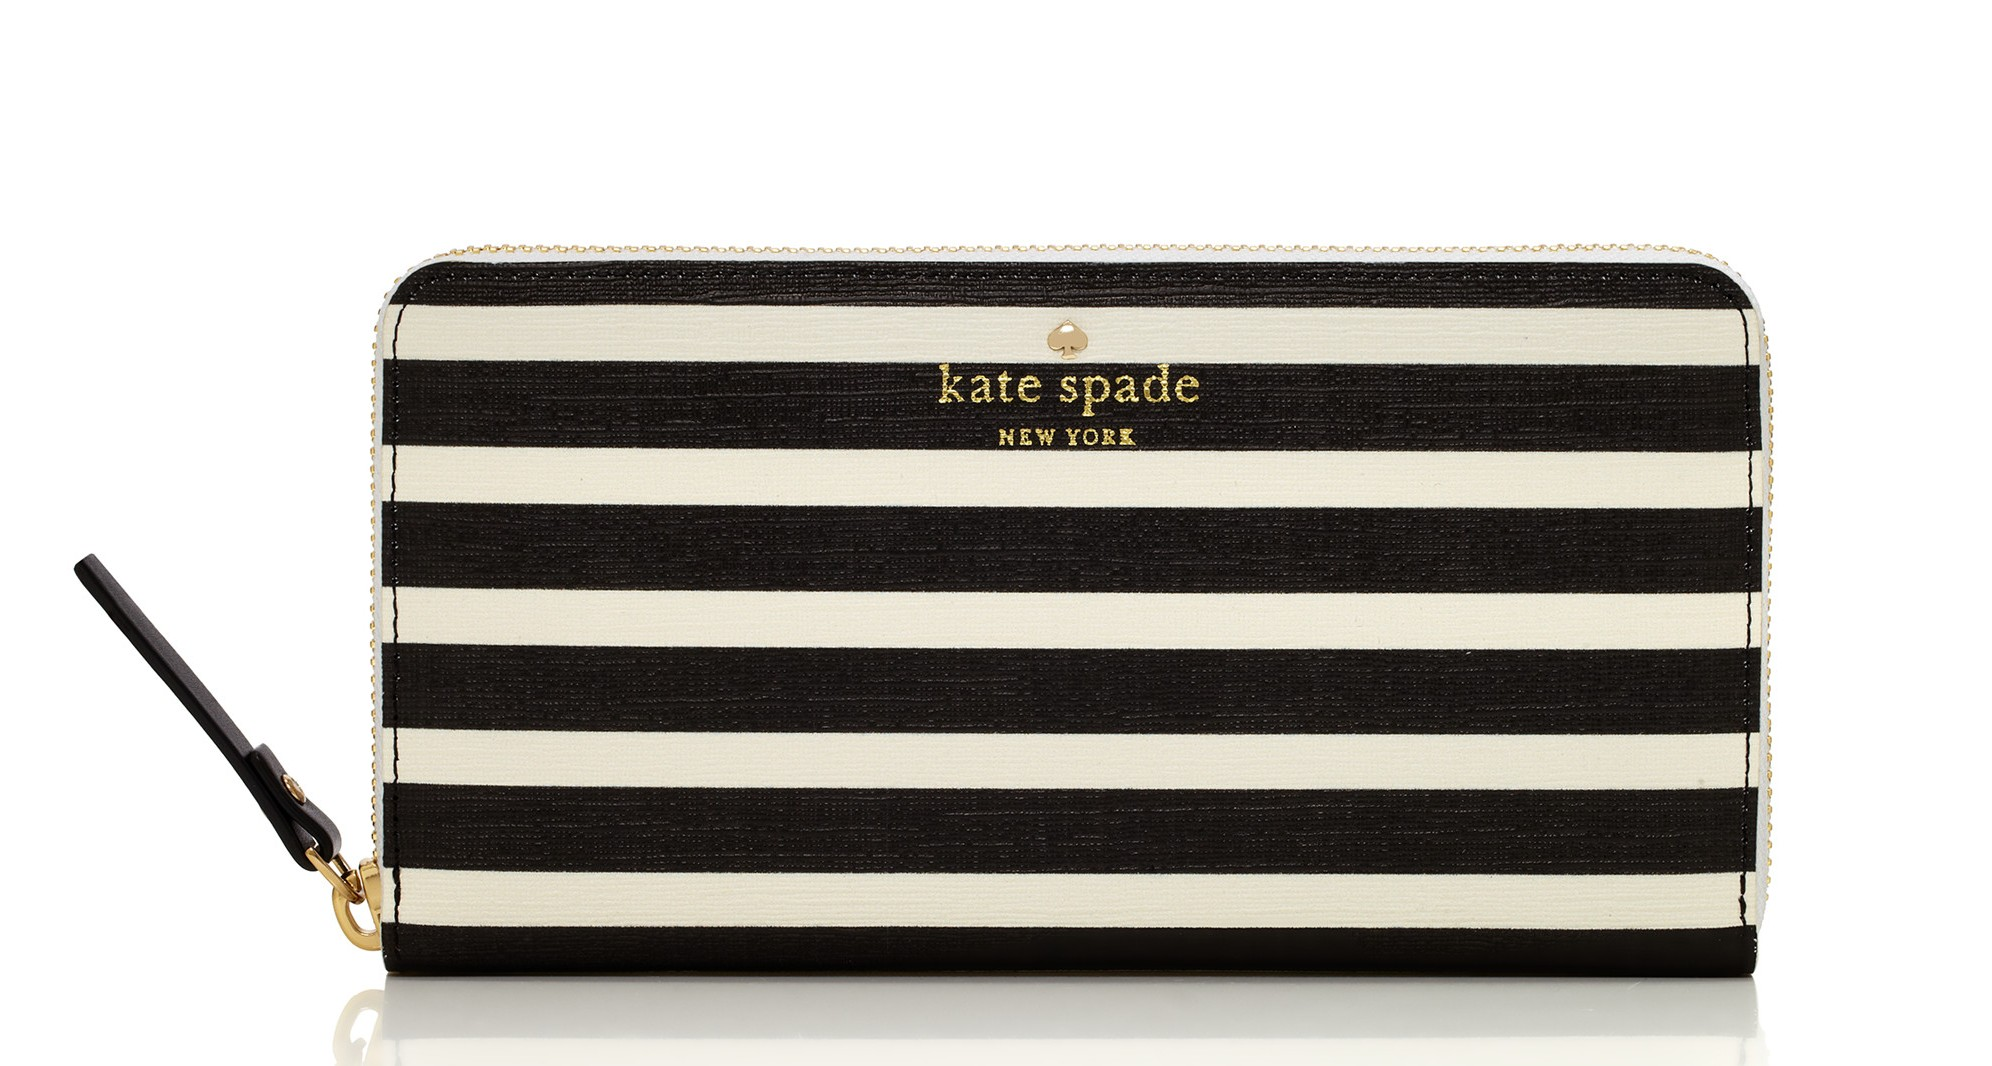 fairmount-square-lacey-kate-spade-gift-mom-cococozy-mothers-day-gift-ideas